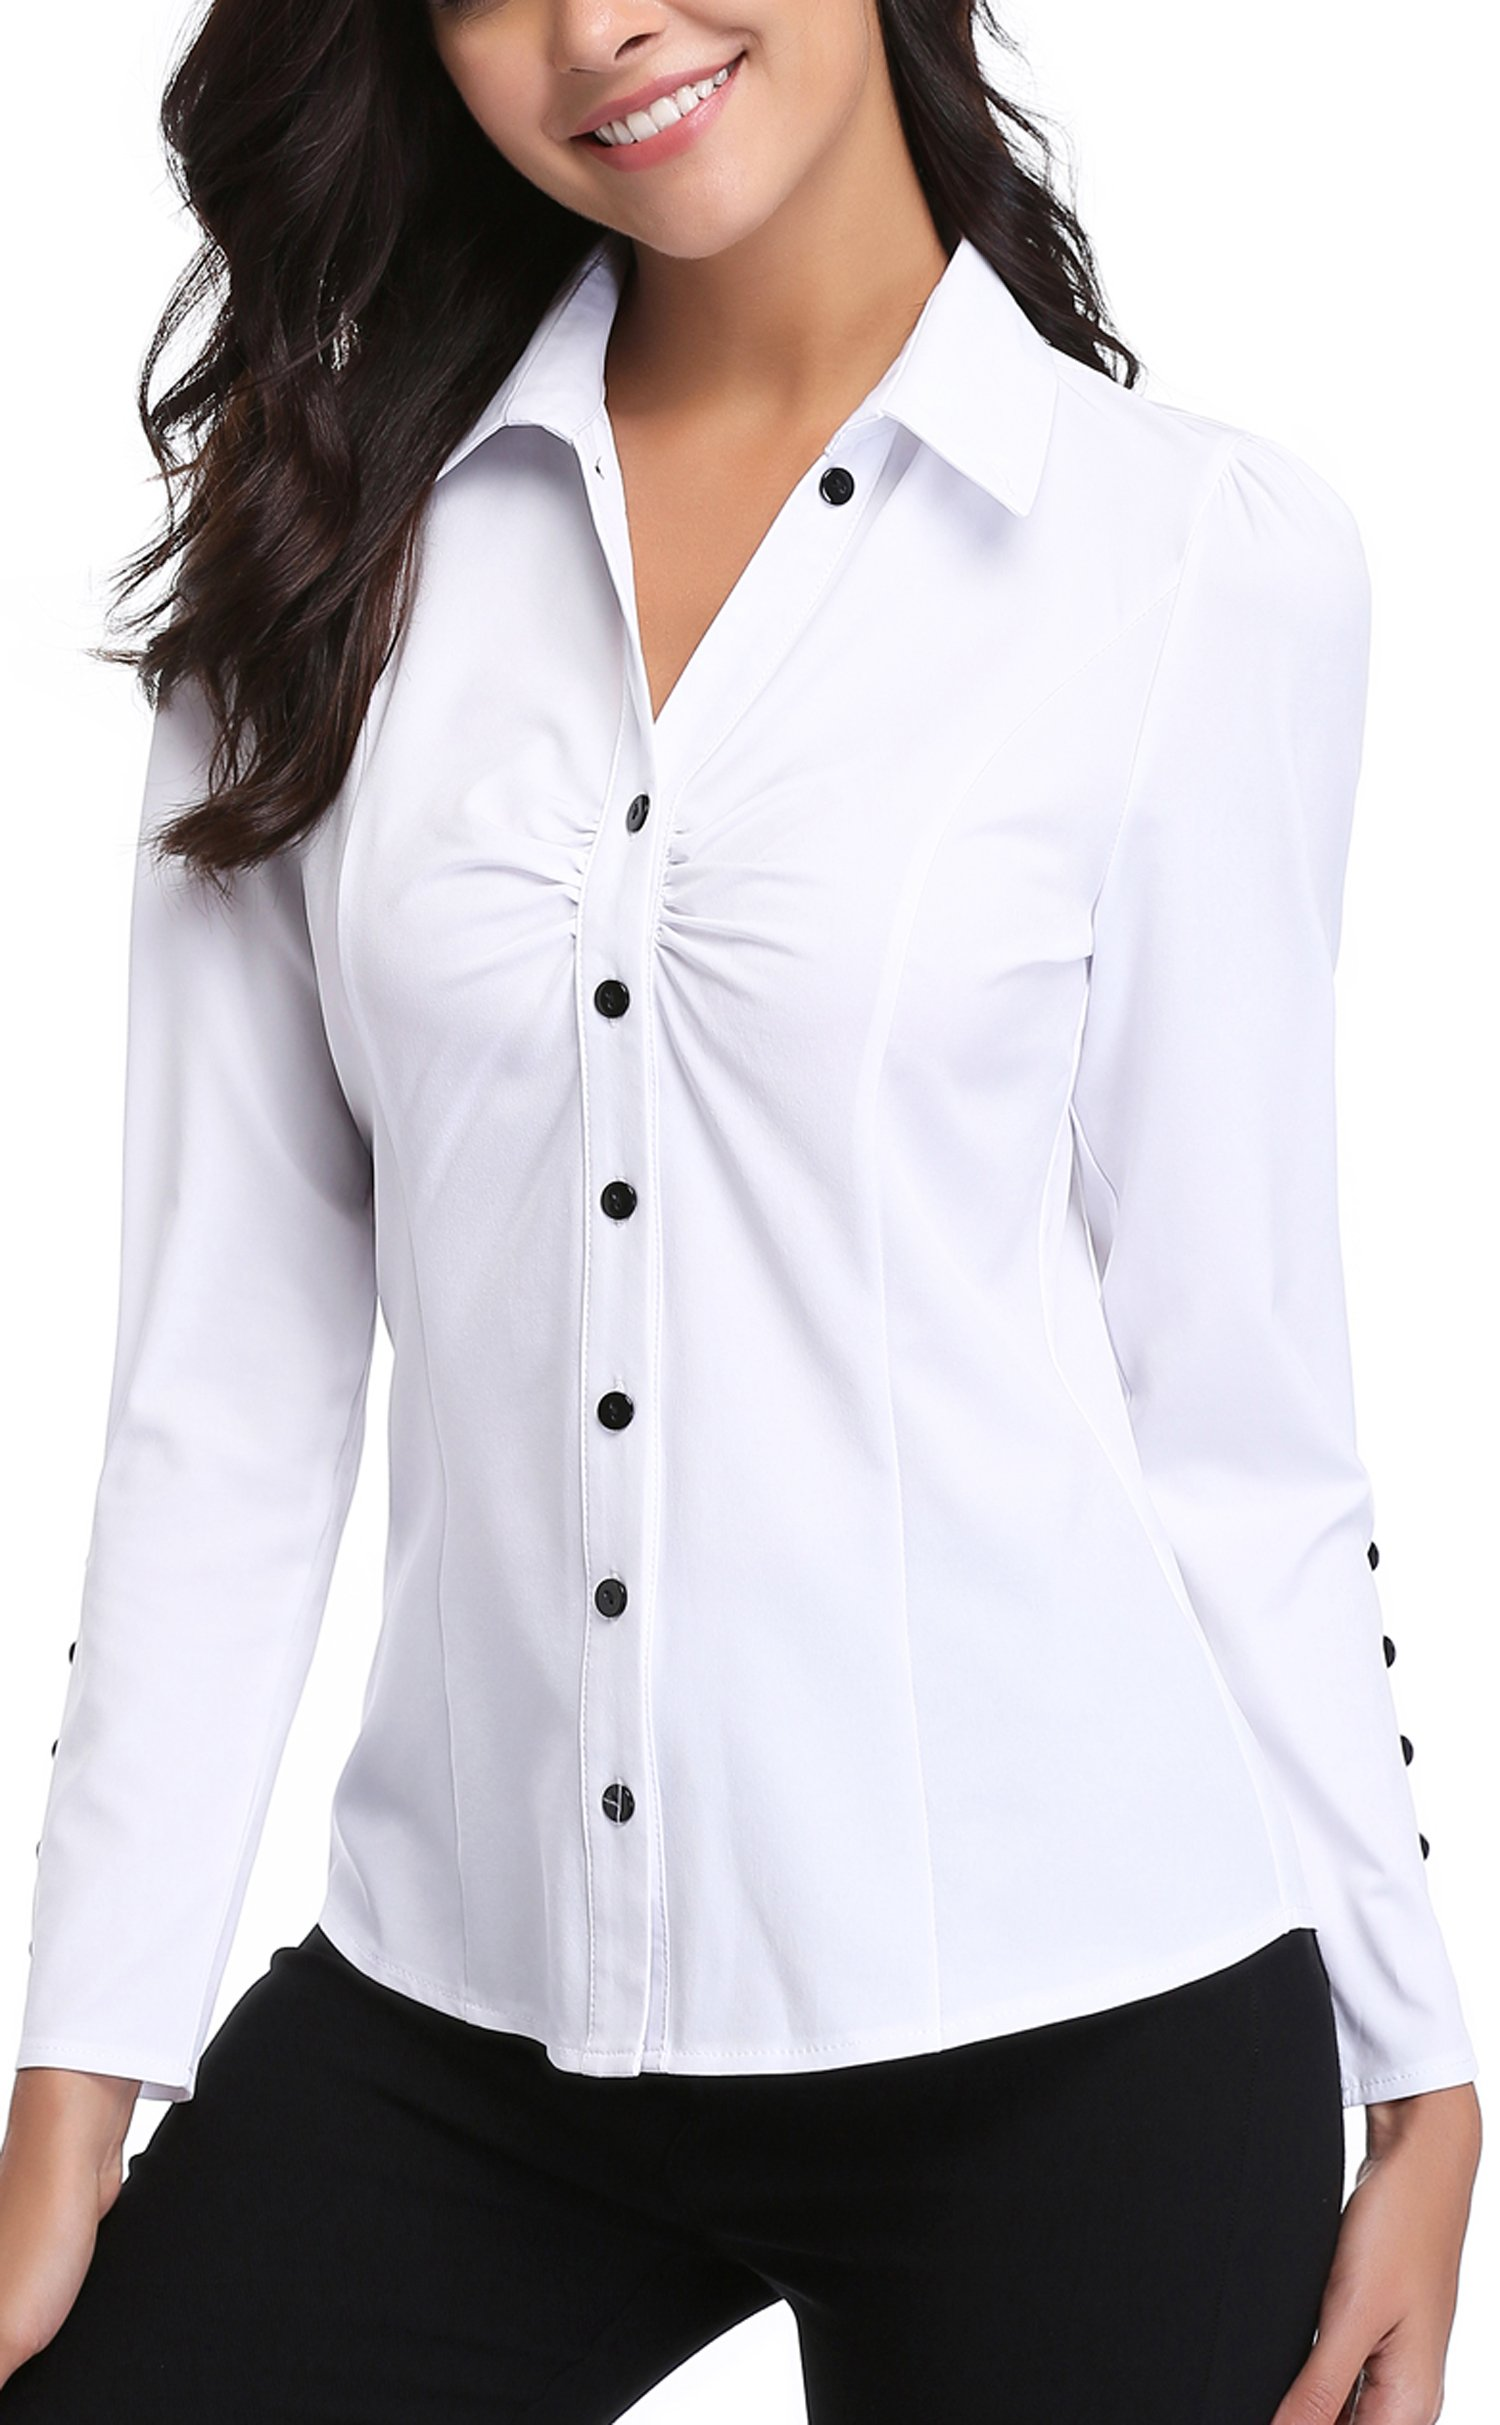 MISS MOLY Women's White Button Down Shirt V Neck Collar Puff Sleeve Office M by MISS MOLY (Image #4)